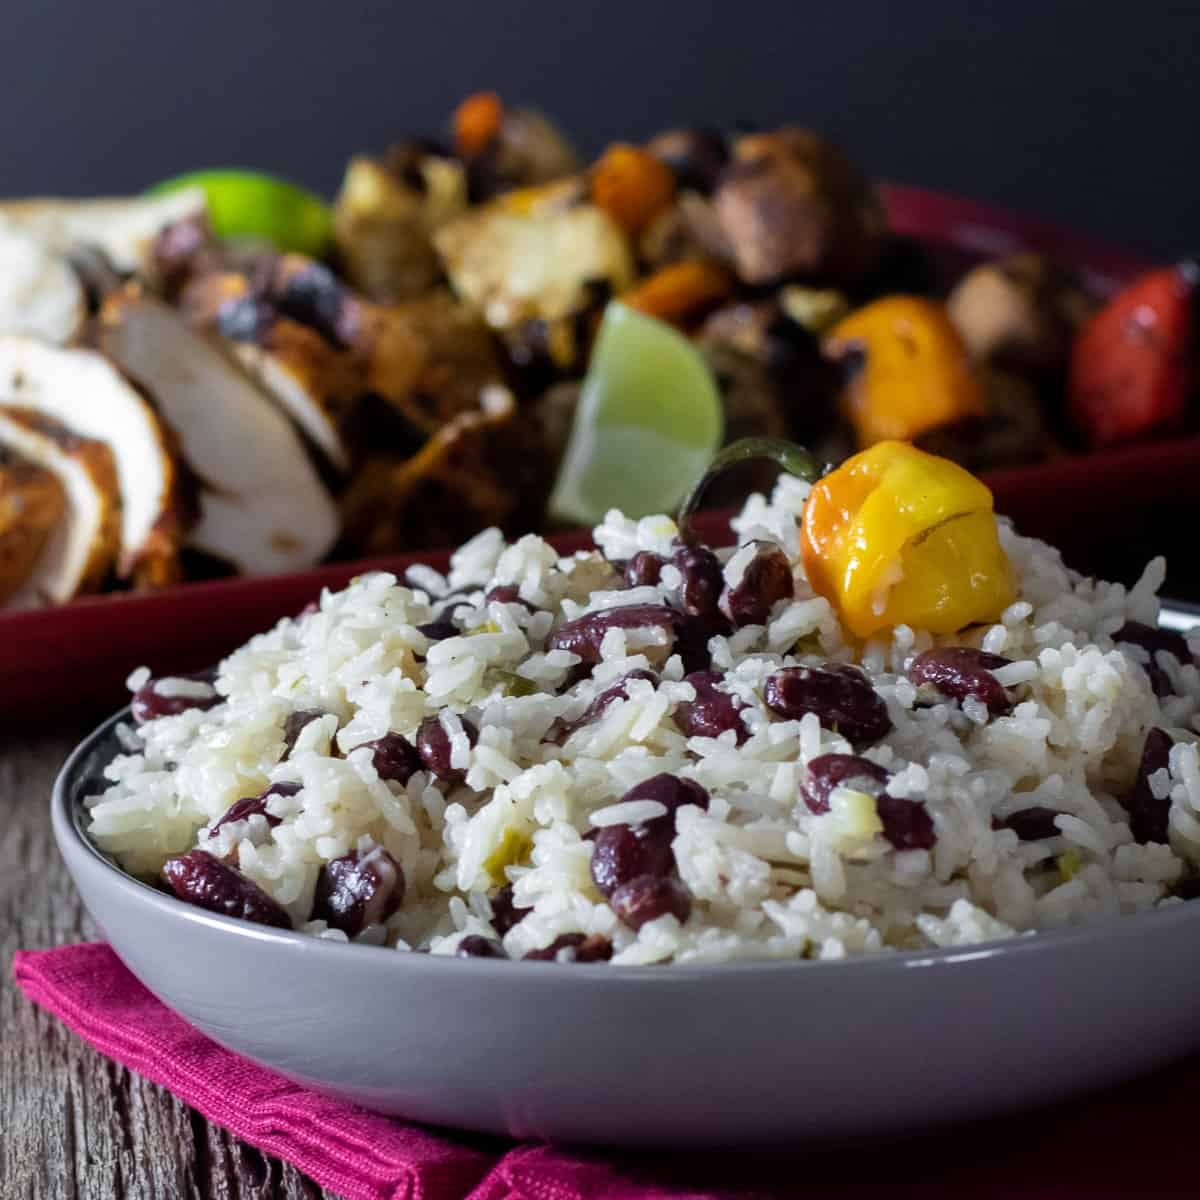 A bowl of rice and beans with a platter of chicken and vegetables in the background.